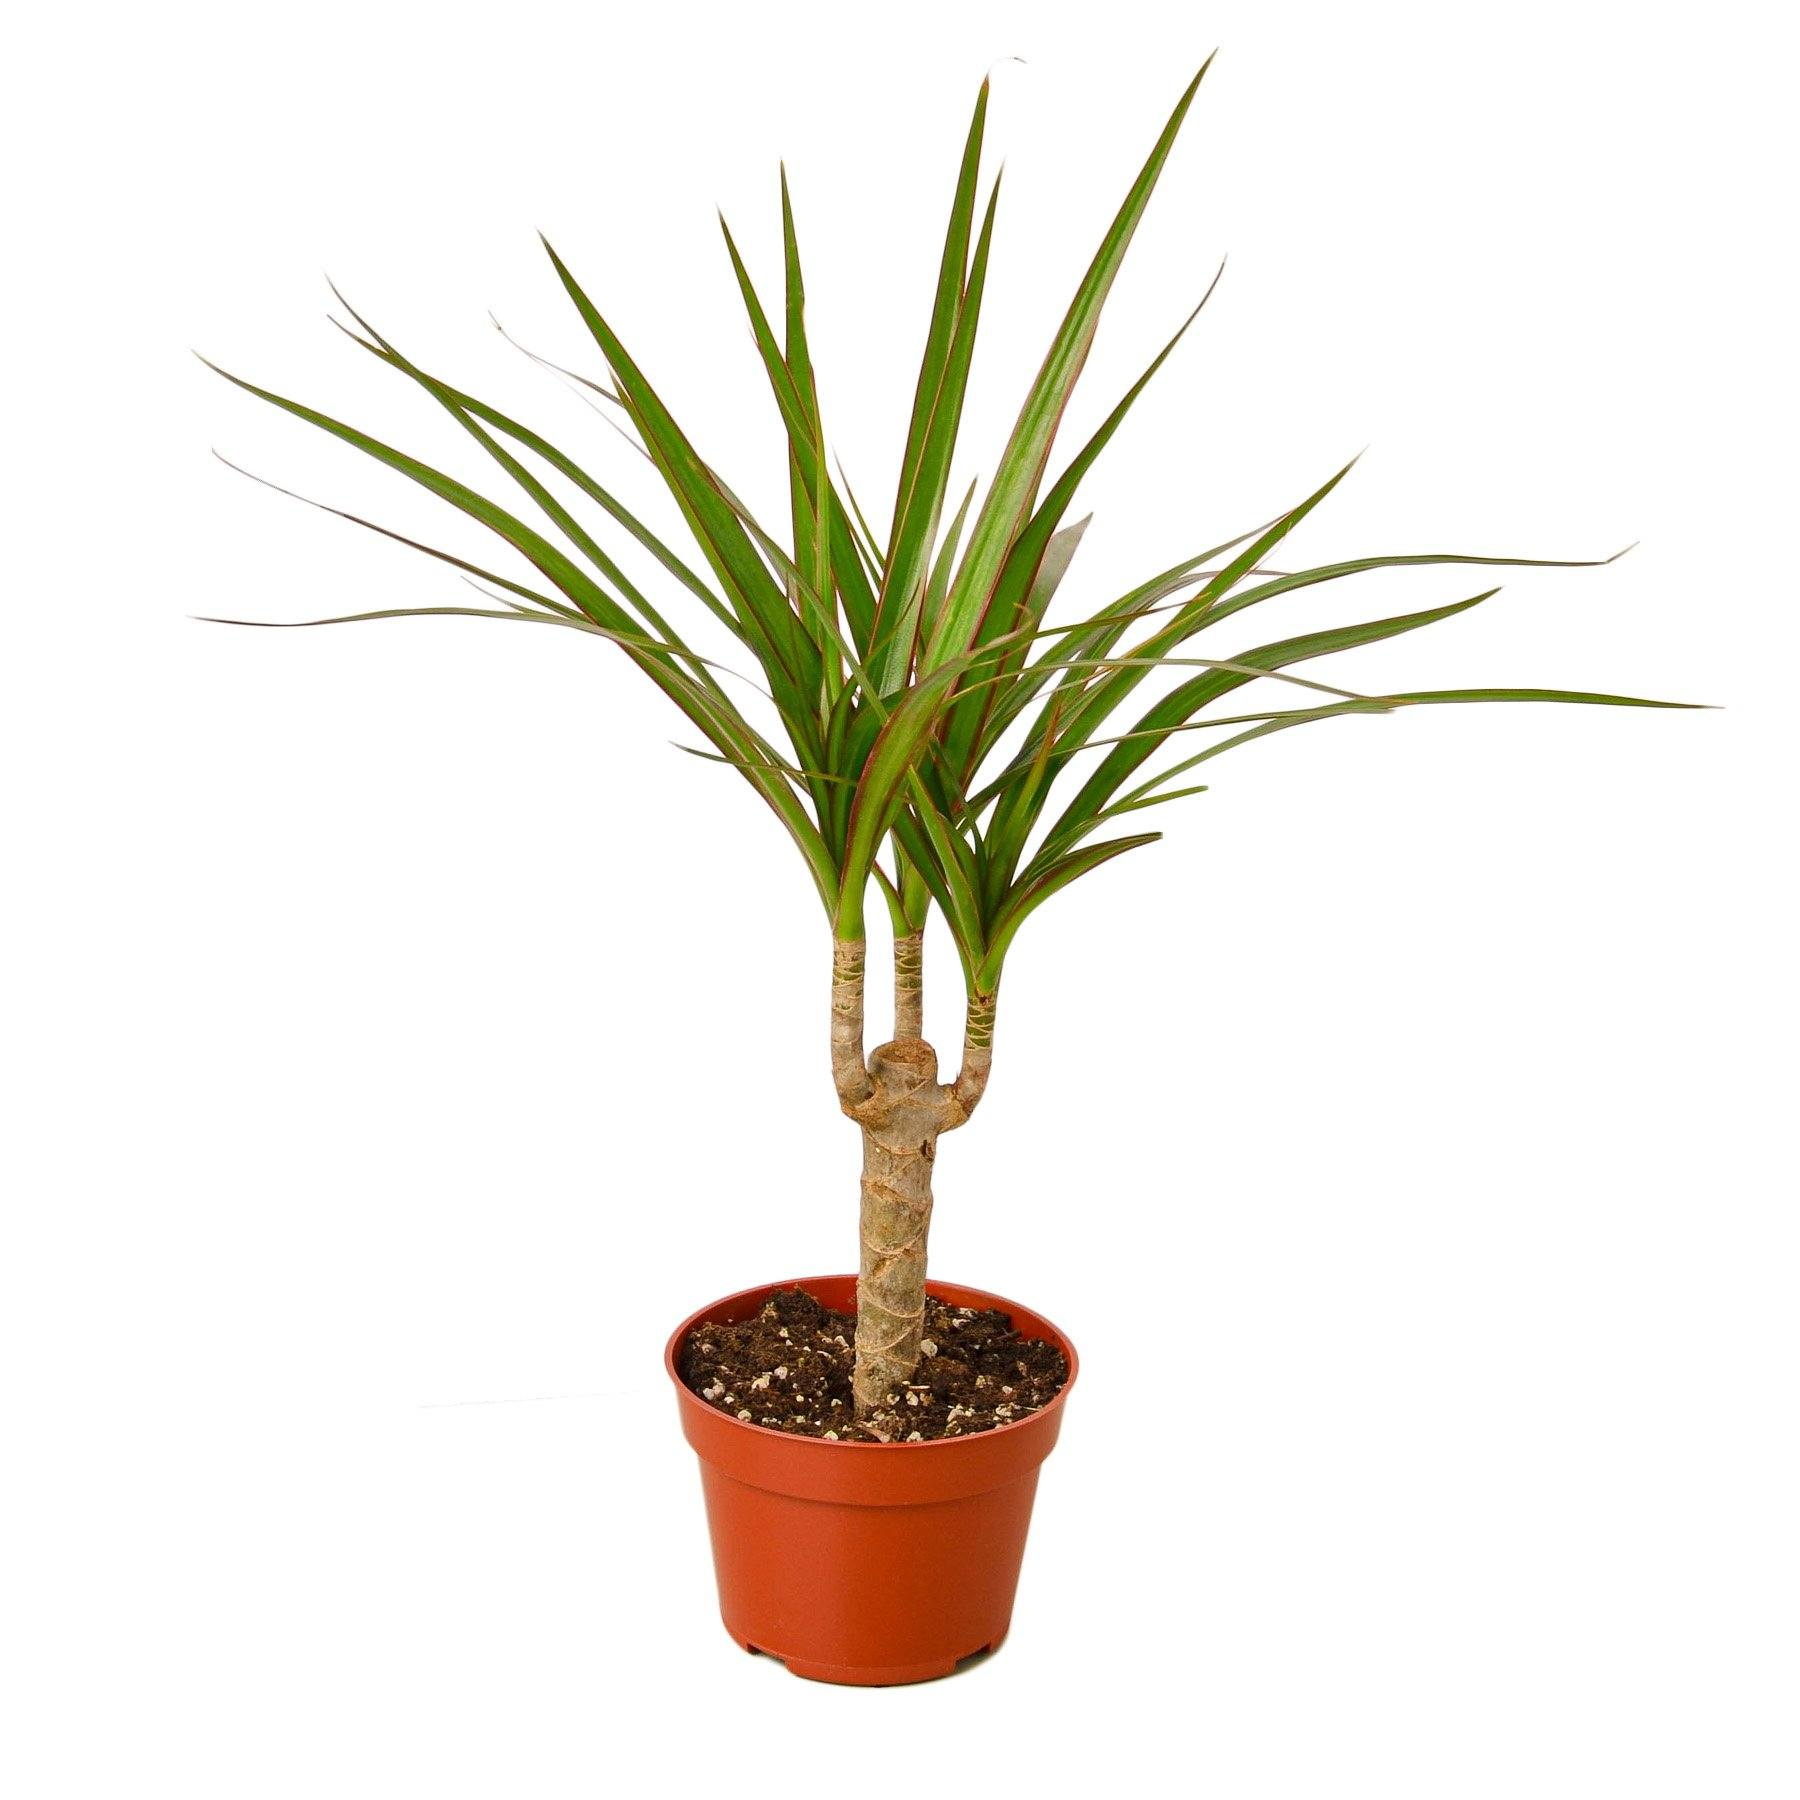 Dracaena Marginata Cane Indoor Houseplant-SproutSouth-Indoor Plants